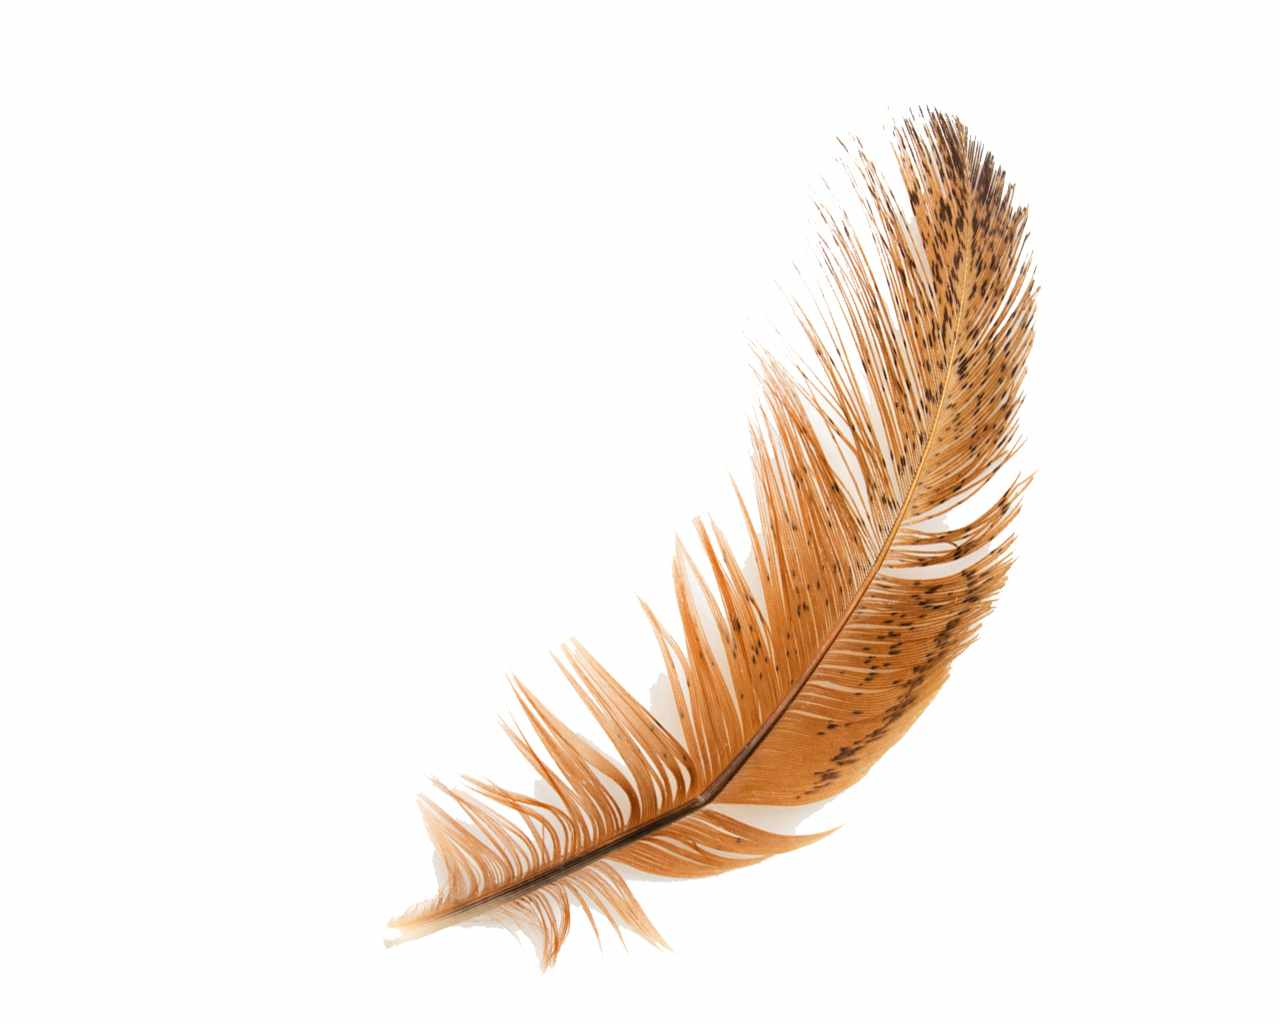 Feather HD PNG - 90477